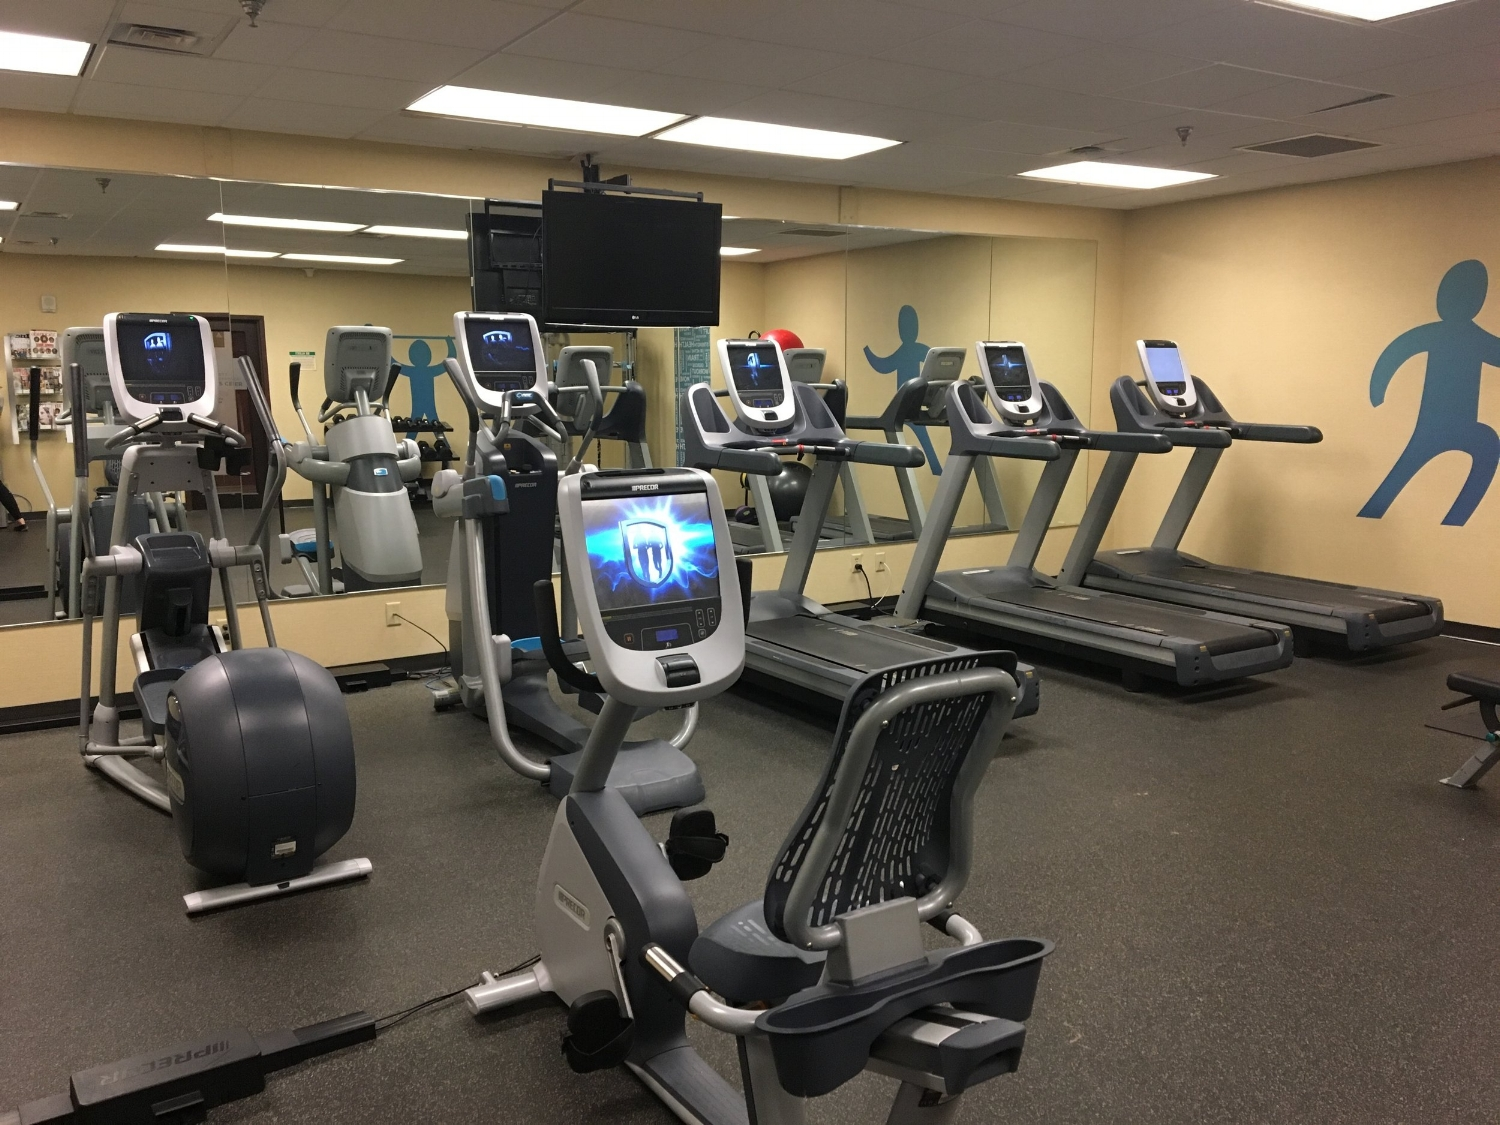 Lincoln Marriott Cornhusker fitness Center